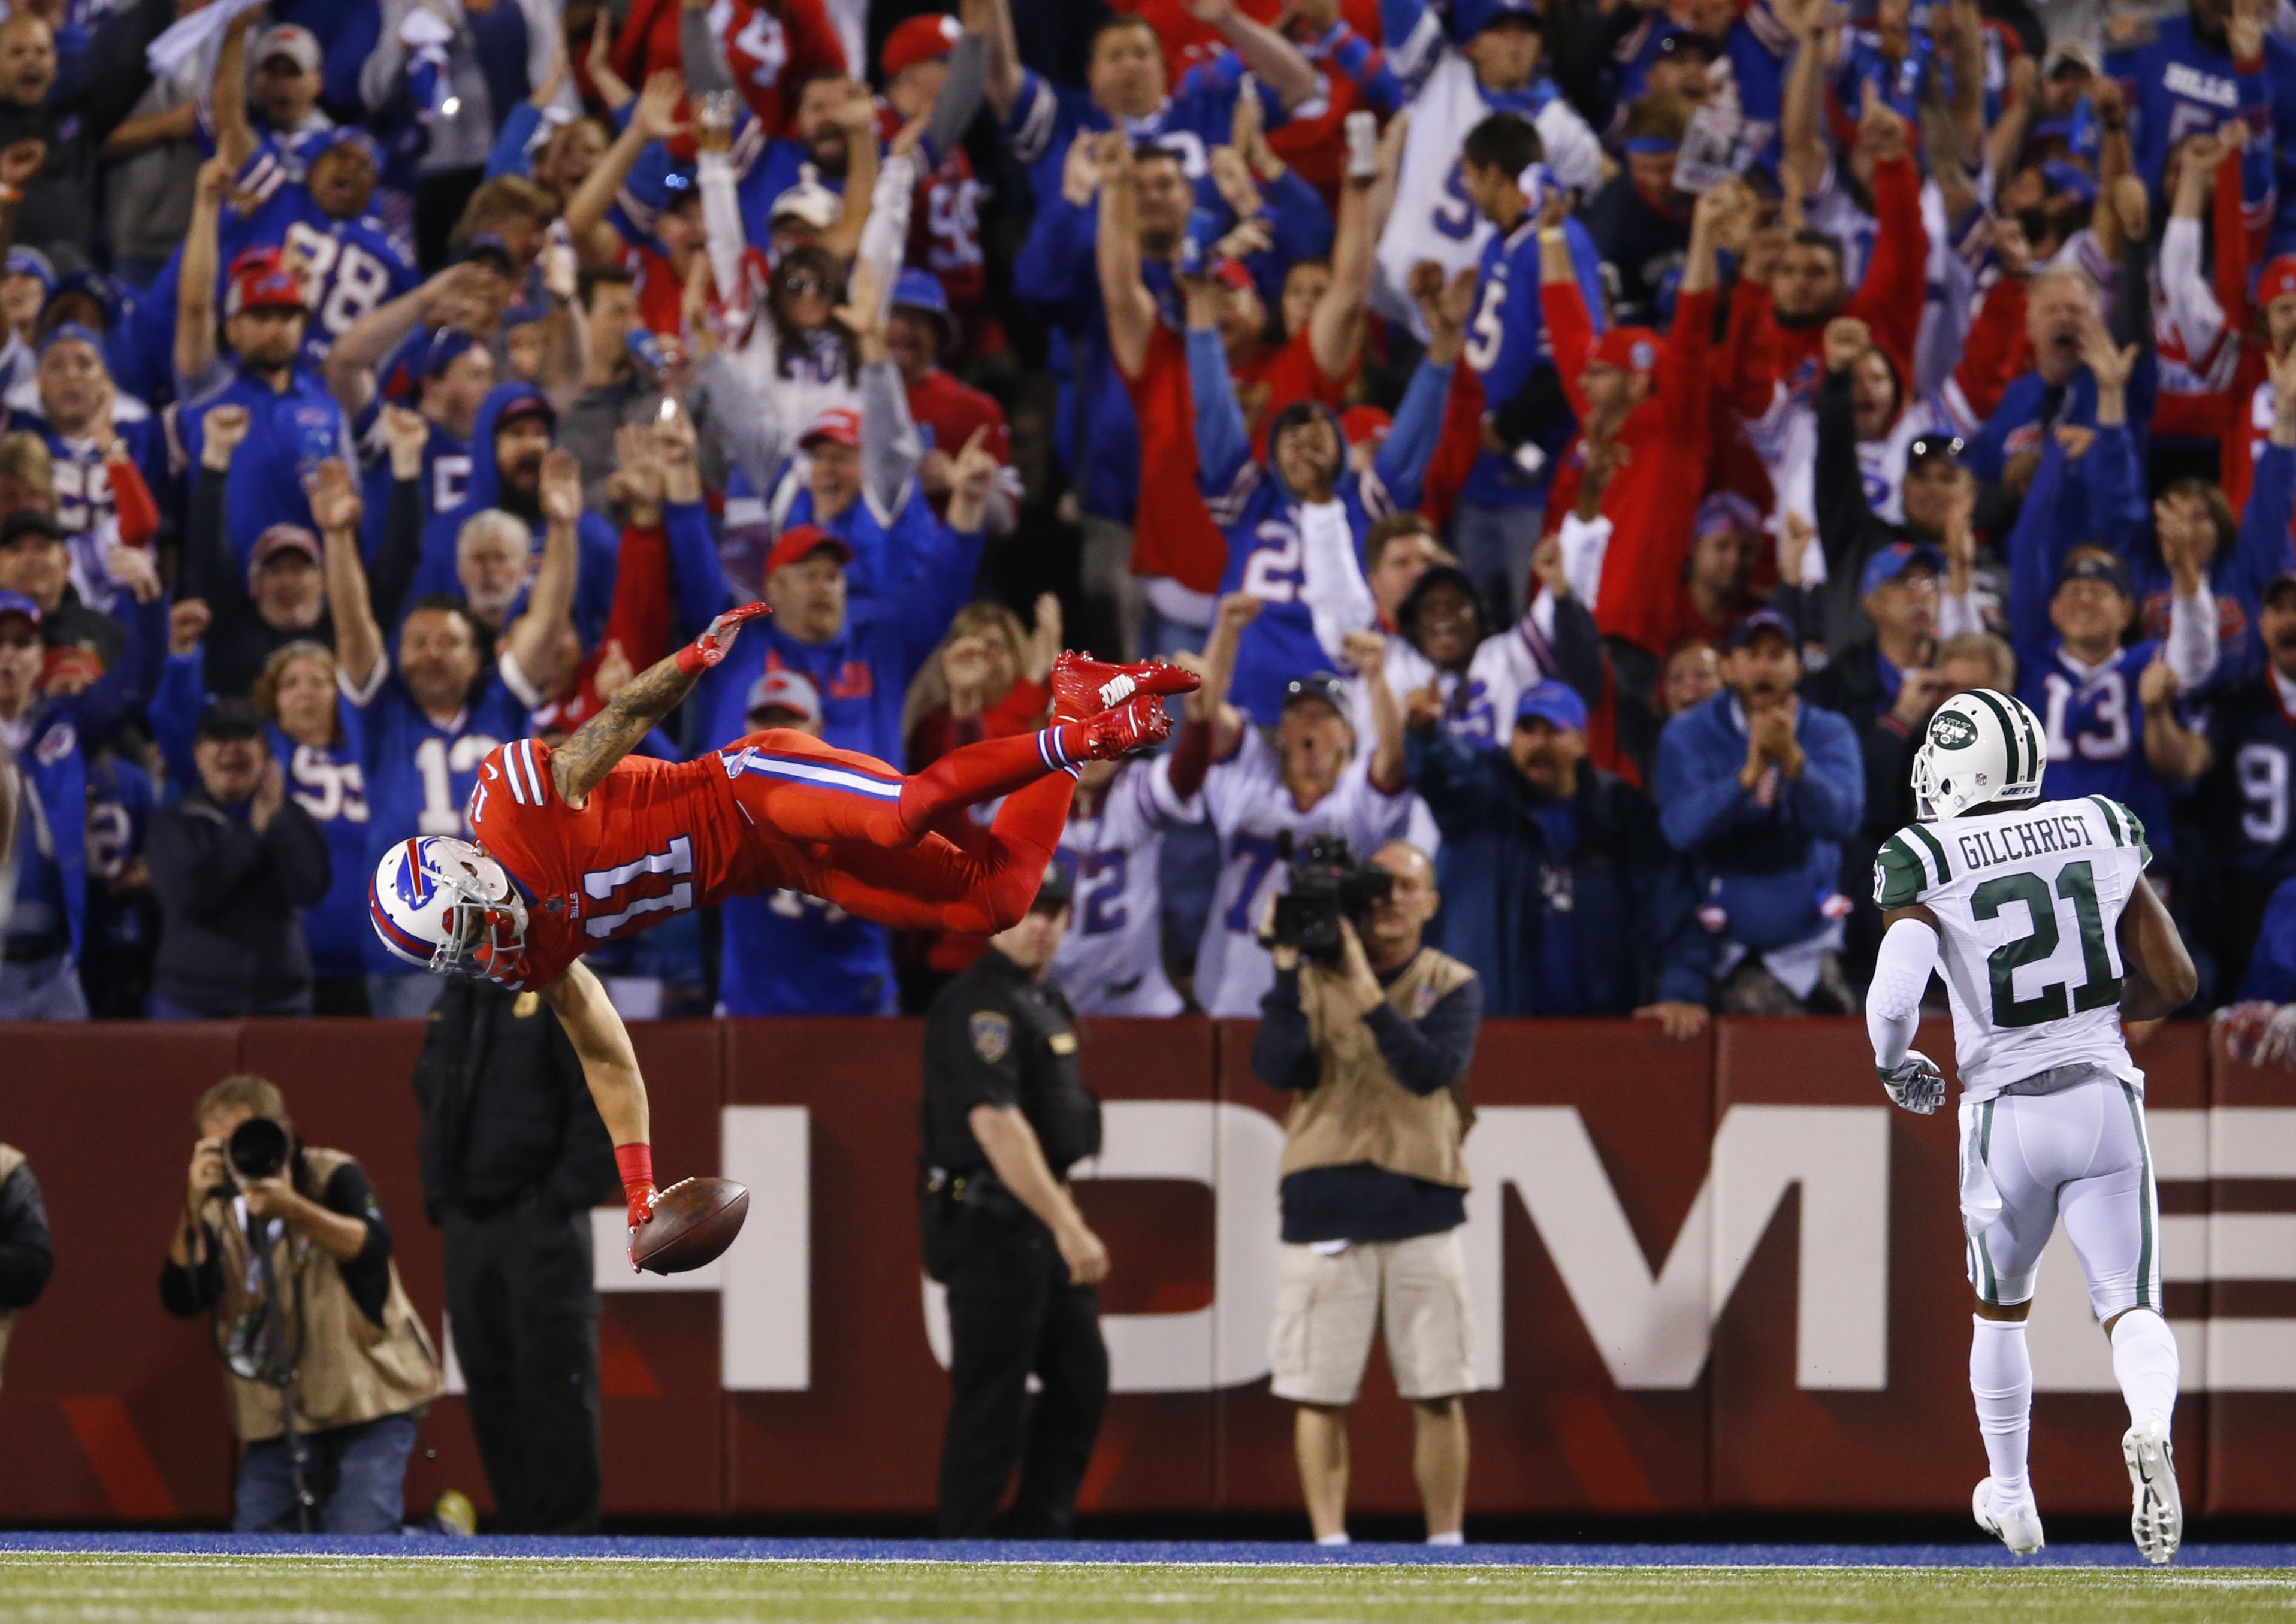 Buffalo Bills wide receiver Greg Salas flips into the end zone for a 71-yard touchdown reception against the New York Jets during the third quarter at New Era Field in Orchard Park, N.Y. on Thursday, Sept. 15, 2016.  (Mark Mulville/Buffalo News)